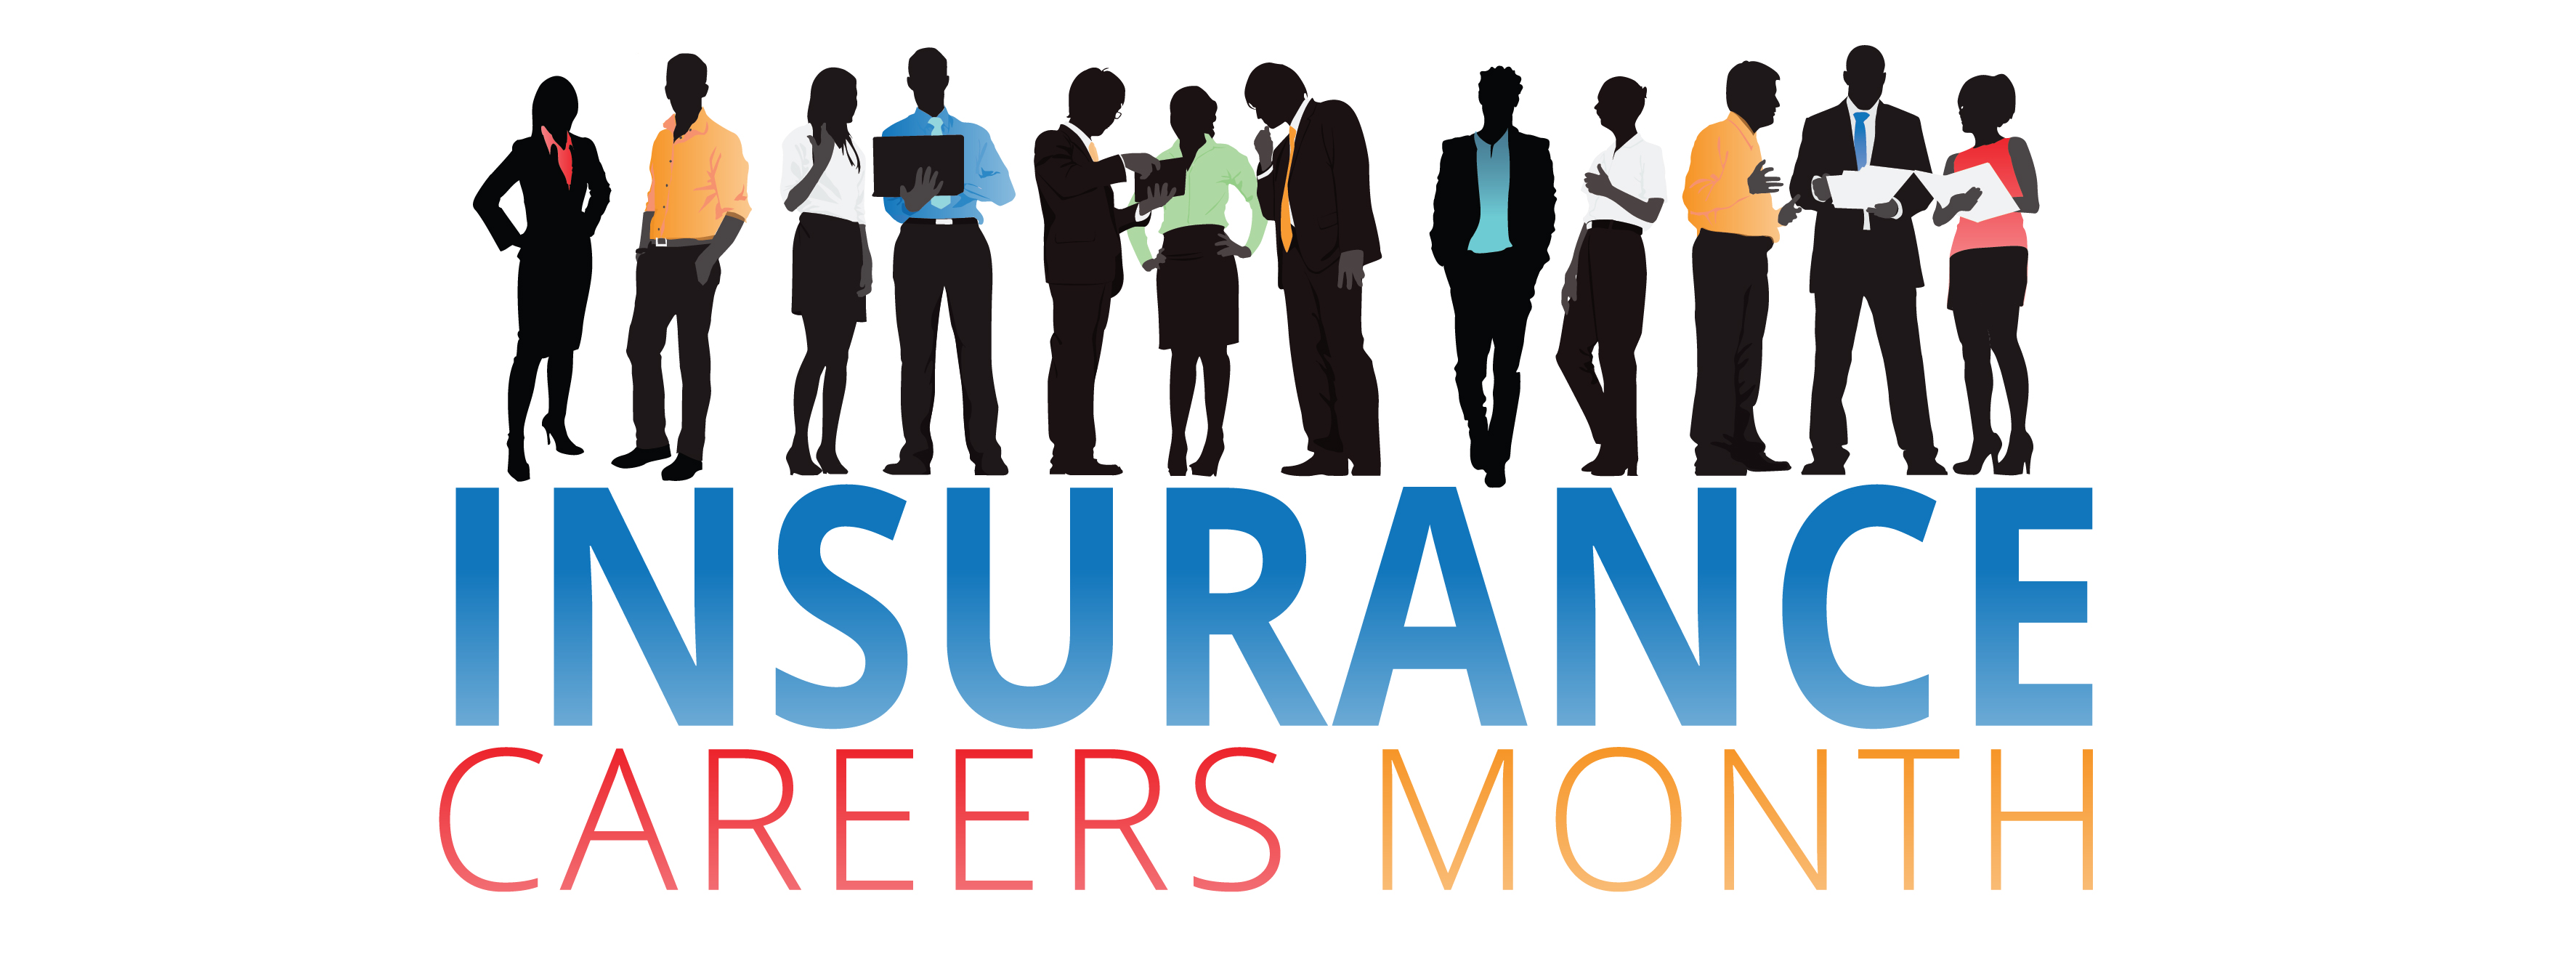 Insurance_Careers_Month_Logo.jpeg